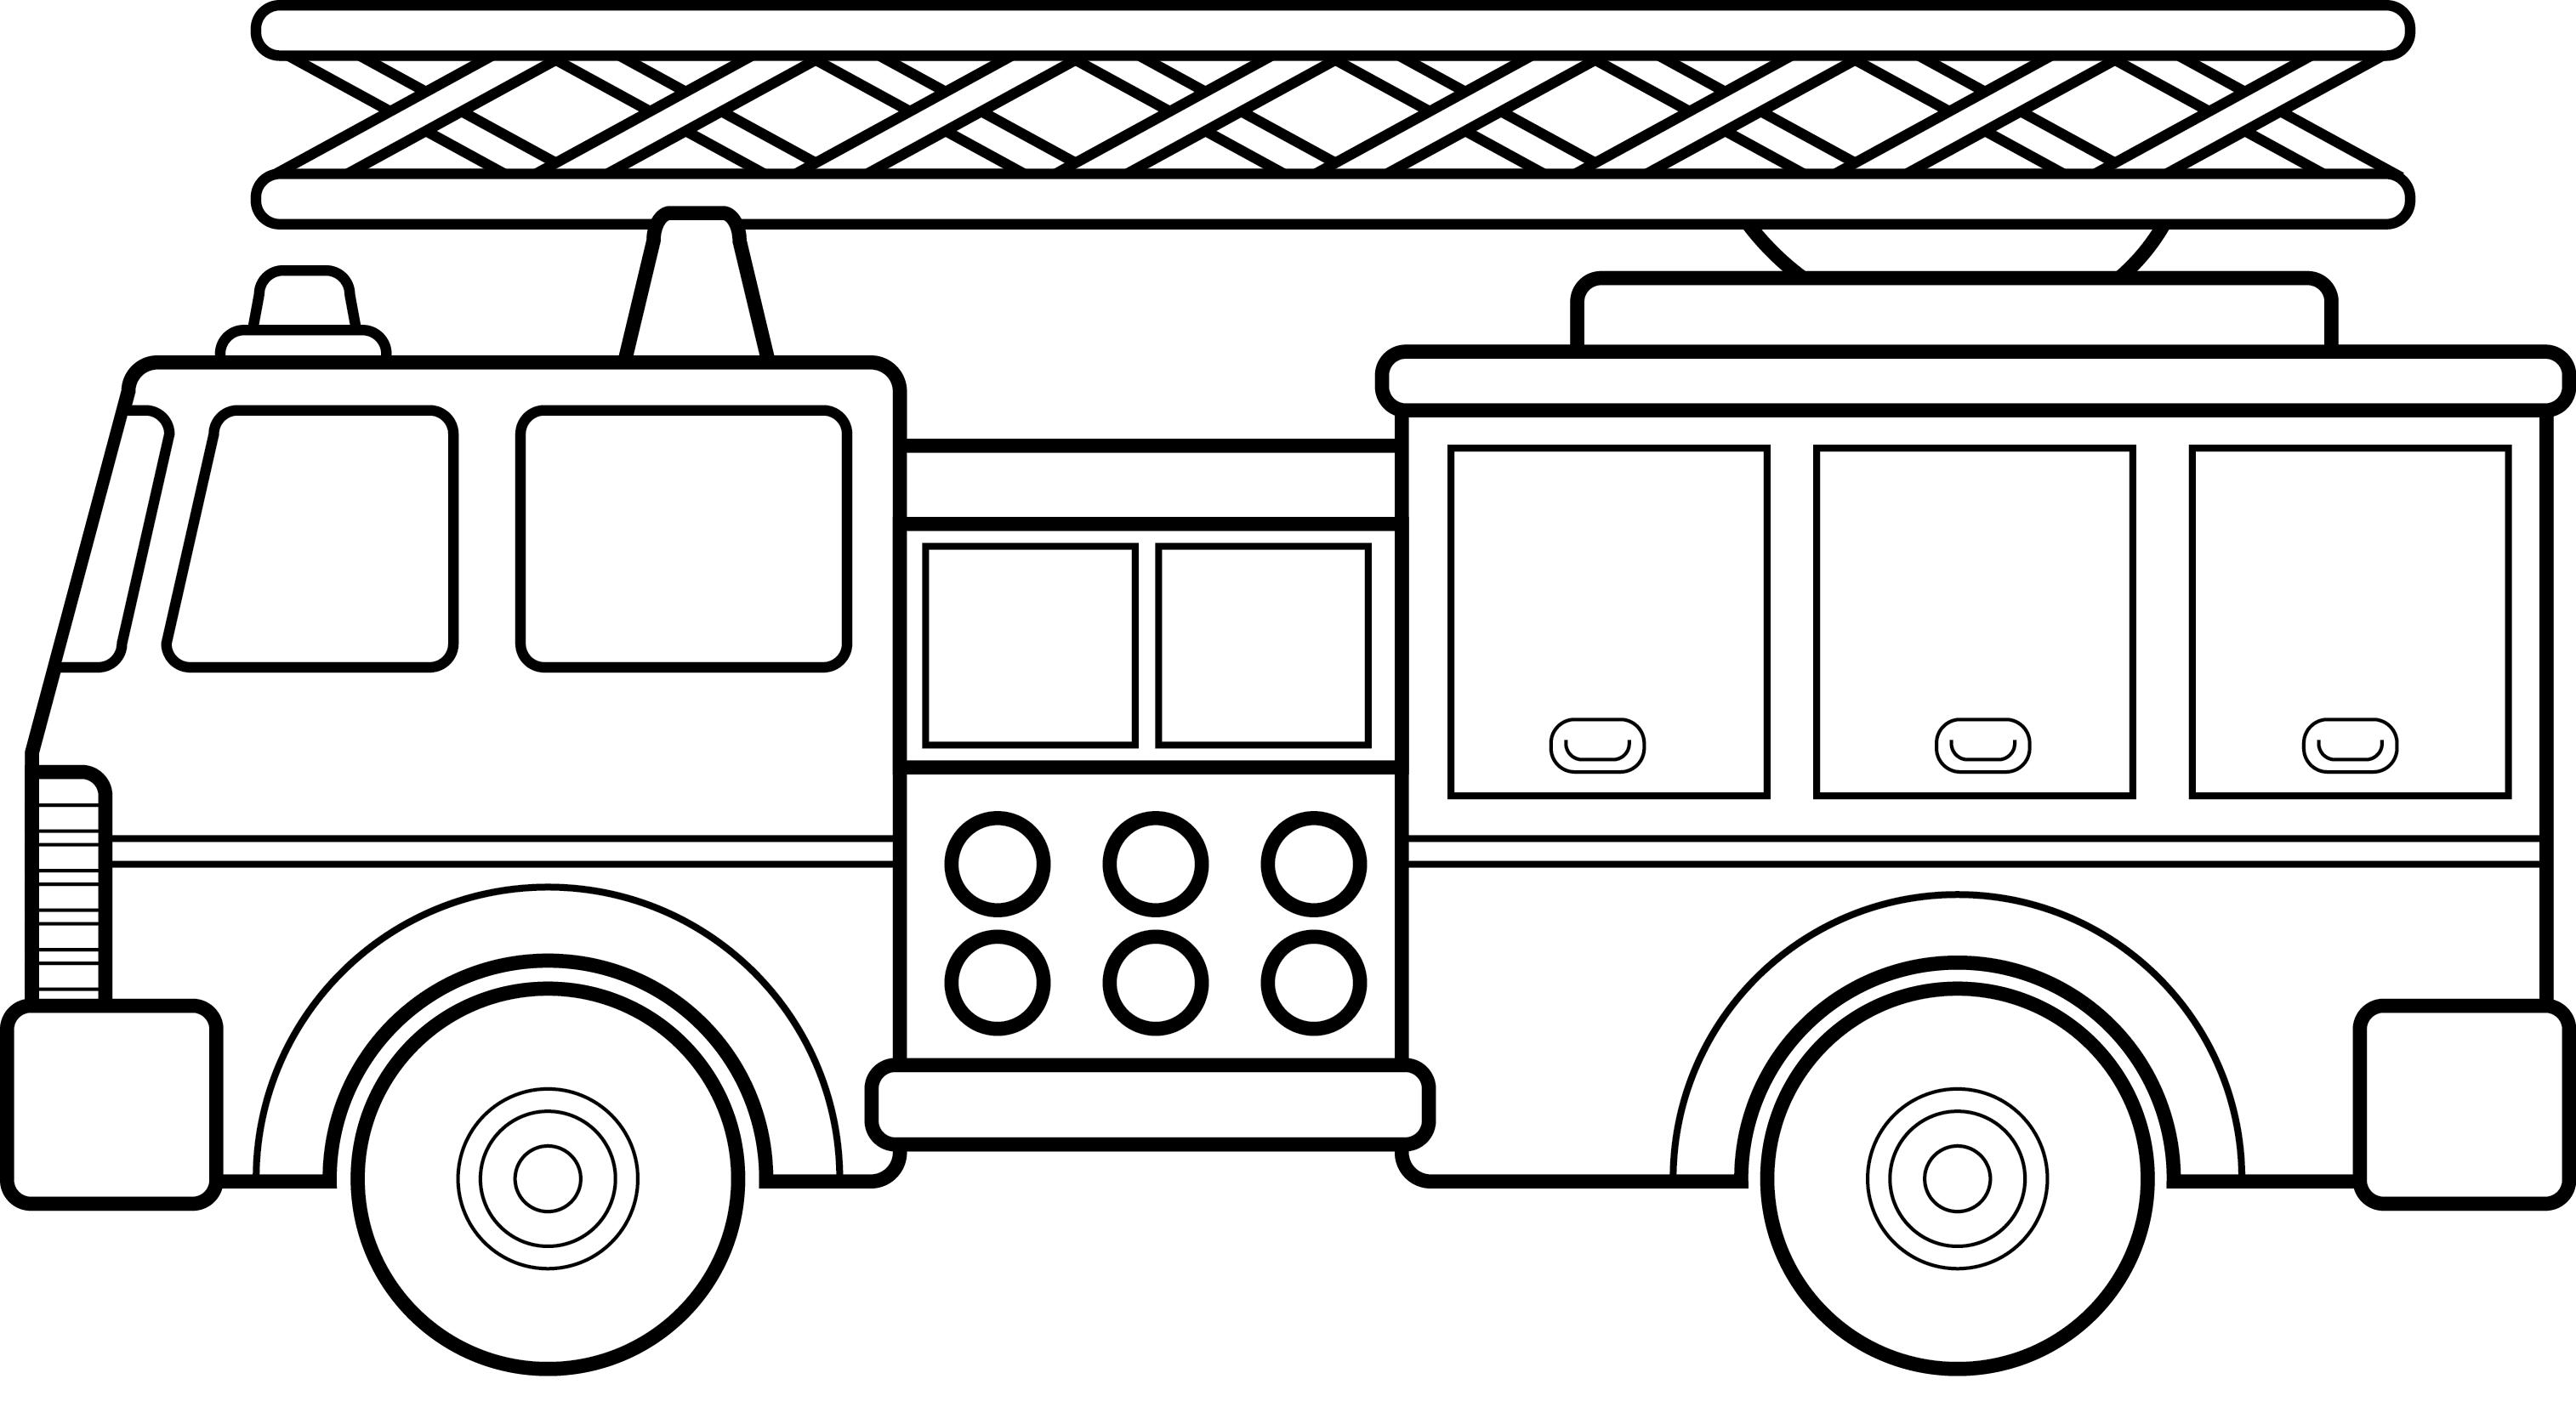 Fire Truck Coloring Pages Printable Truck Coloring Pages Monster Truck Coloring Pages Cars Coloring Pages Firetruck Coloring Page